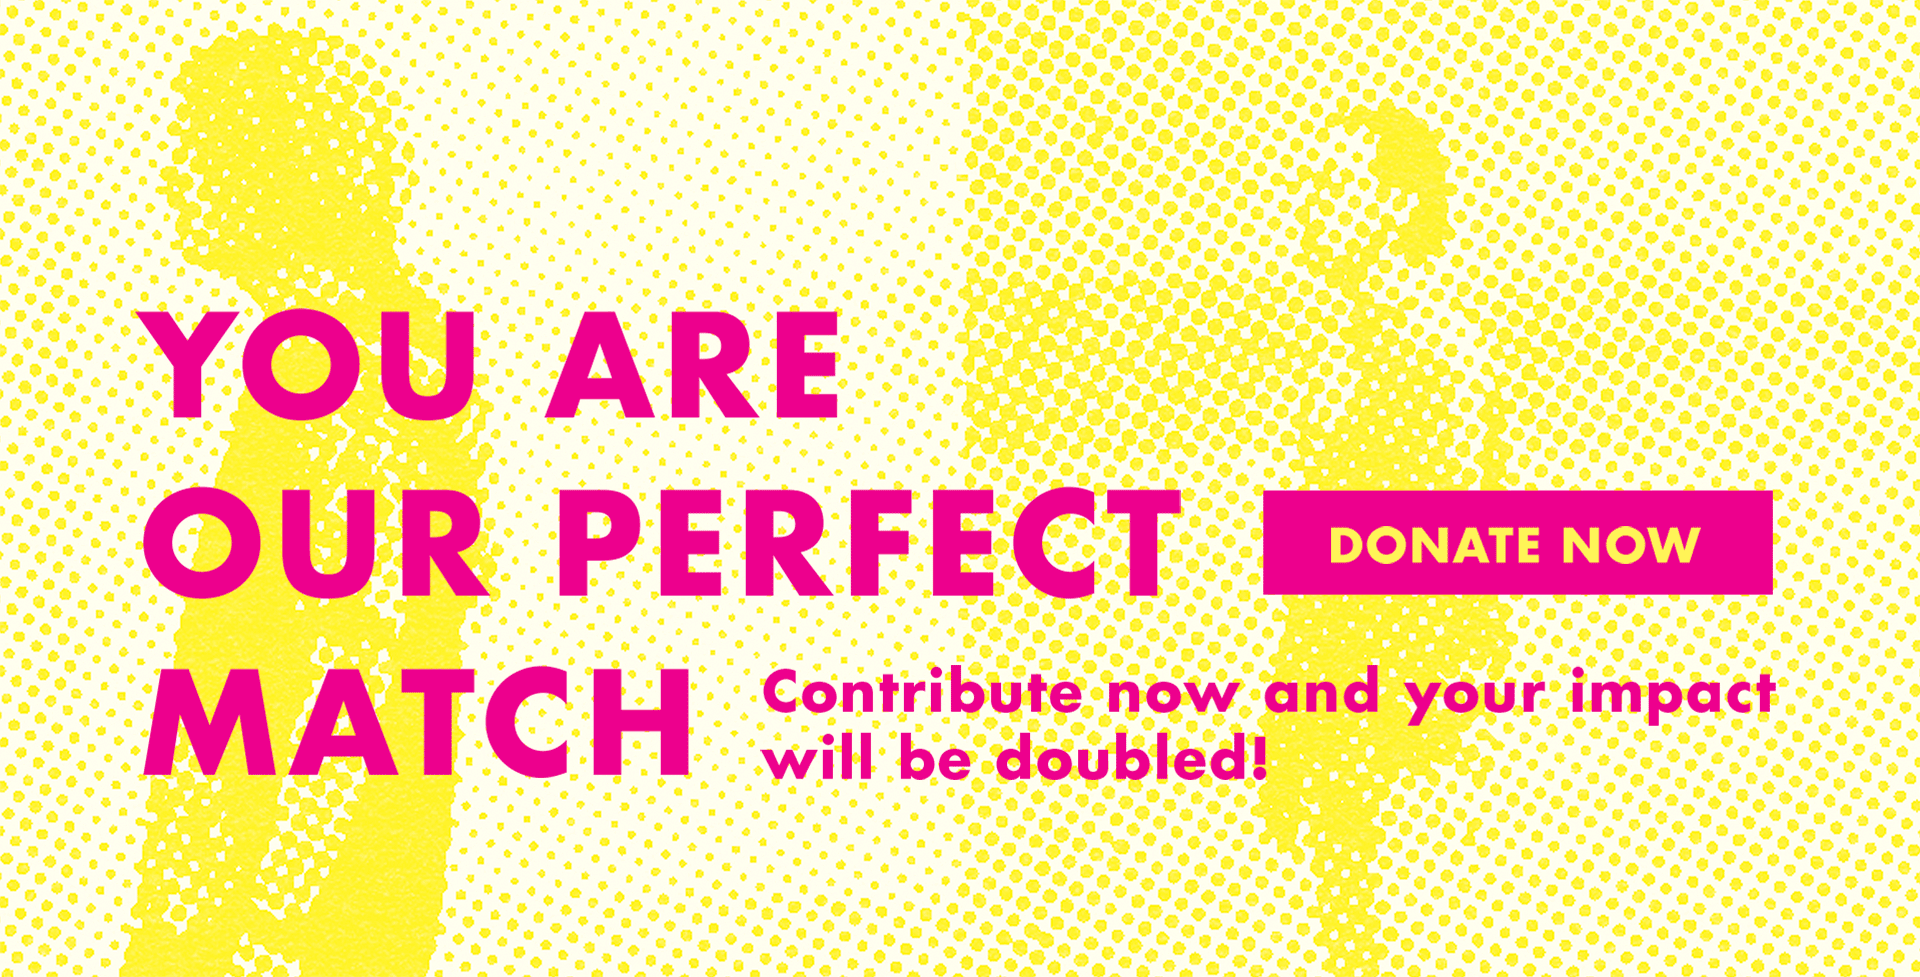 Contribute now and your impact will be doubled.